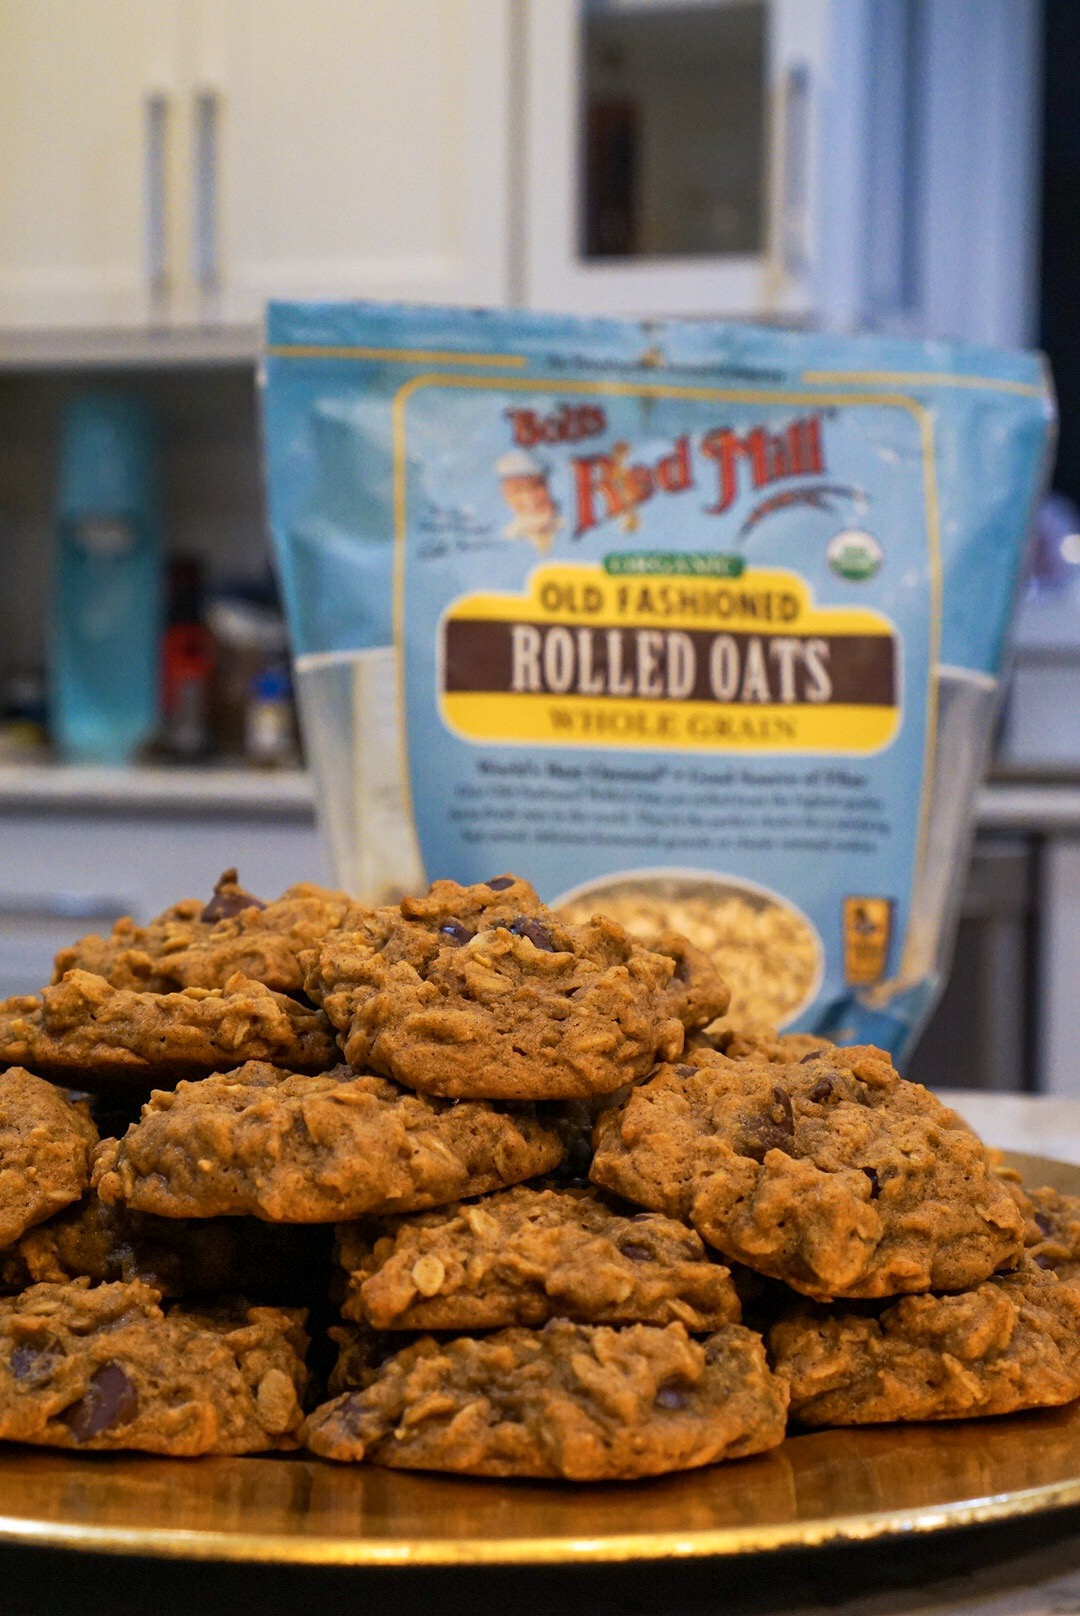 Bobs Red Mill Rolled Oats make excellent cookies